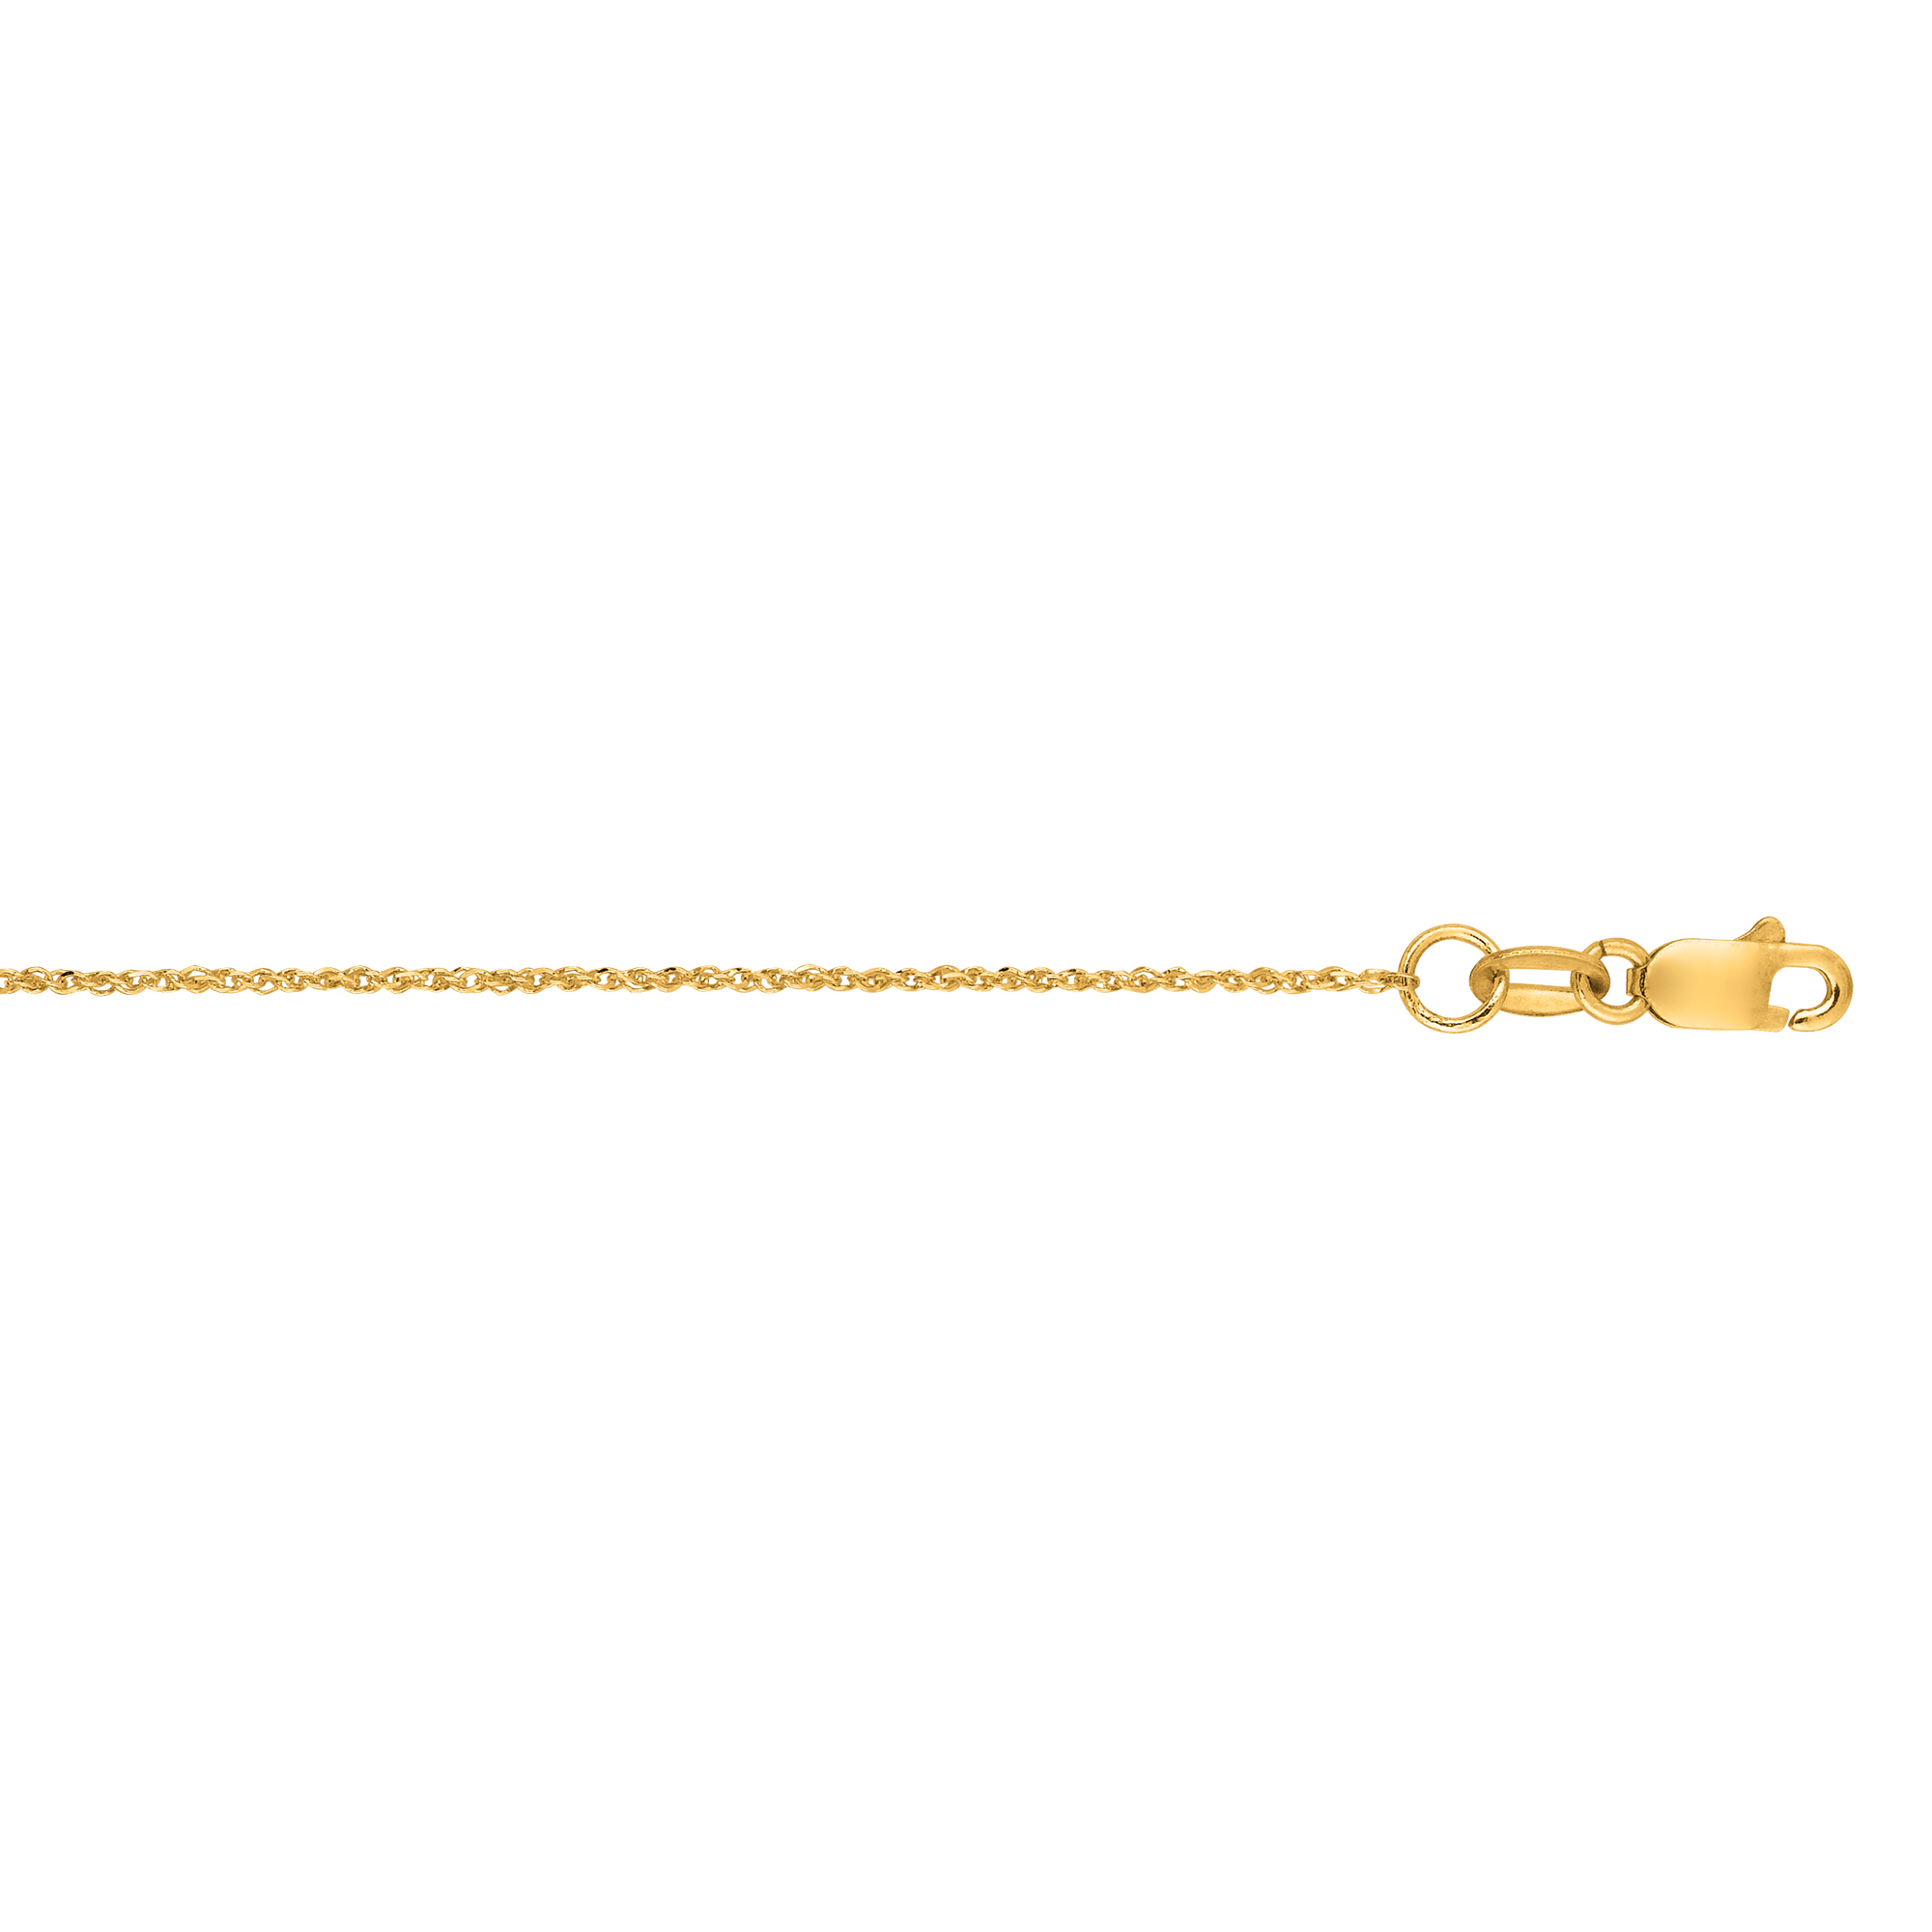 Hollow 10k Gold Ropa Chain For Women 0.9mm Wide Yellow Image